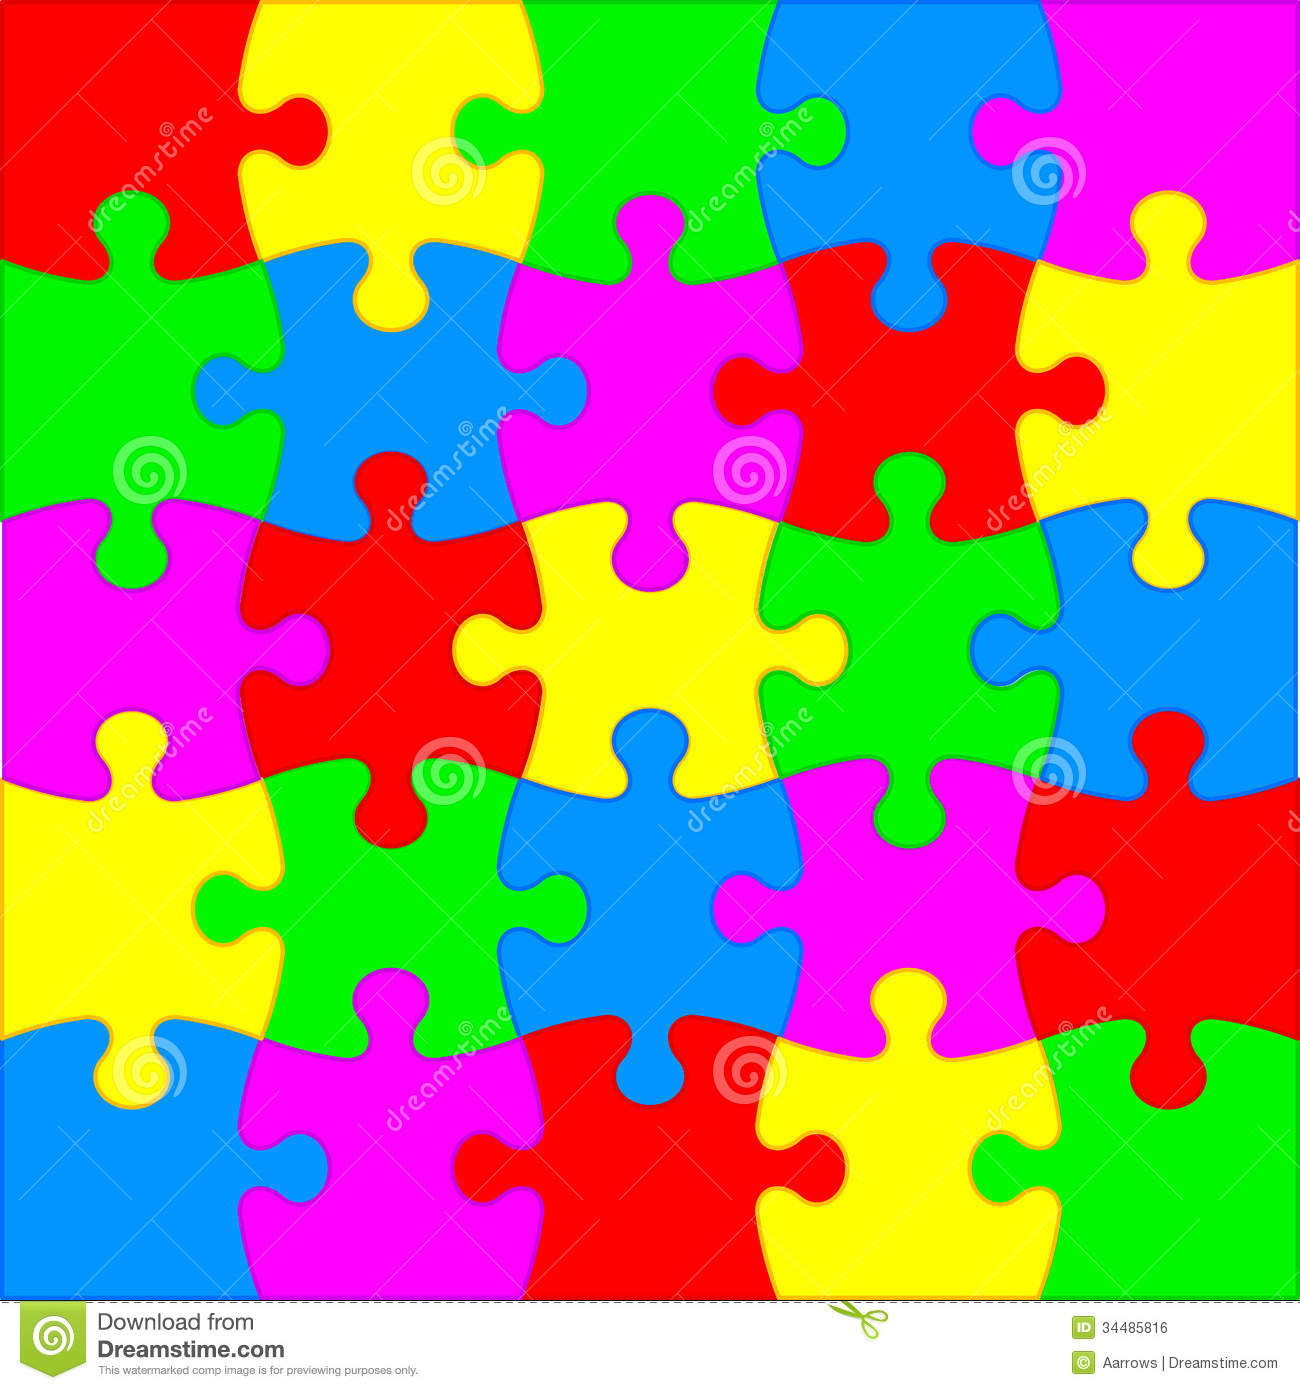 Jigsaw Puzzle Stock Vector Illustration Of Paper Connect